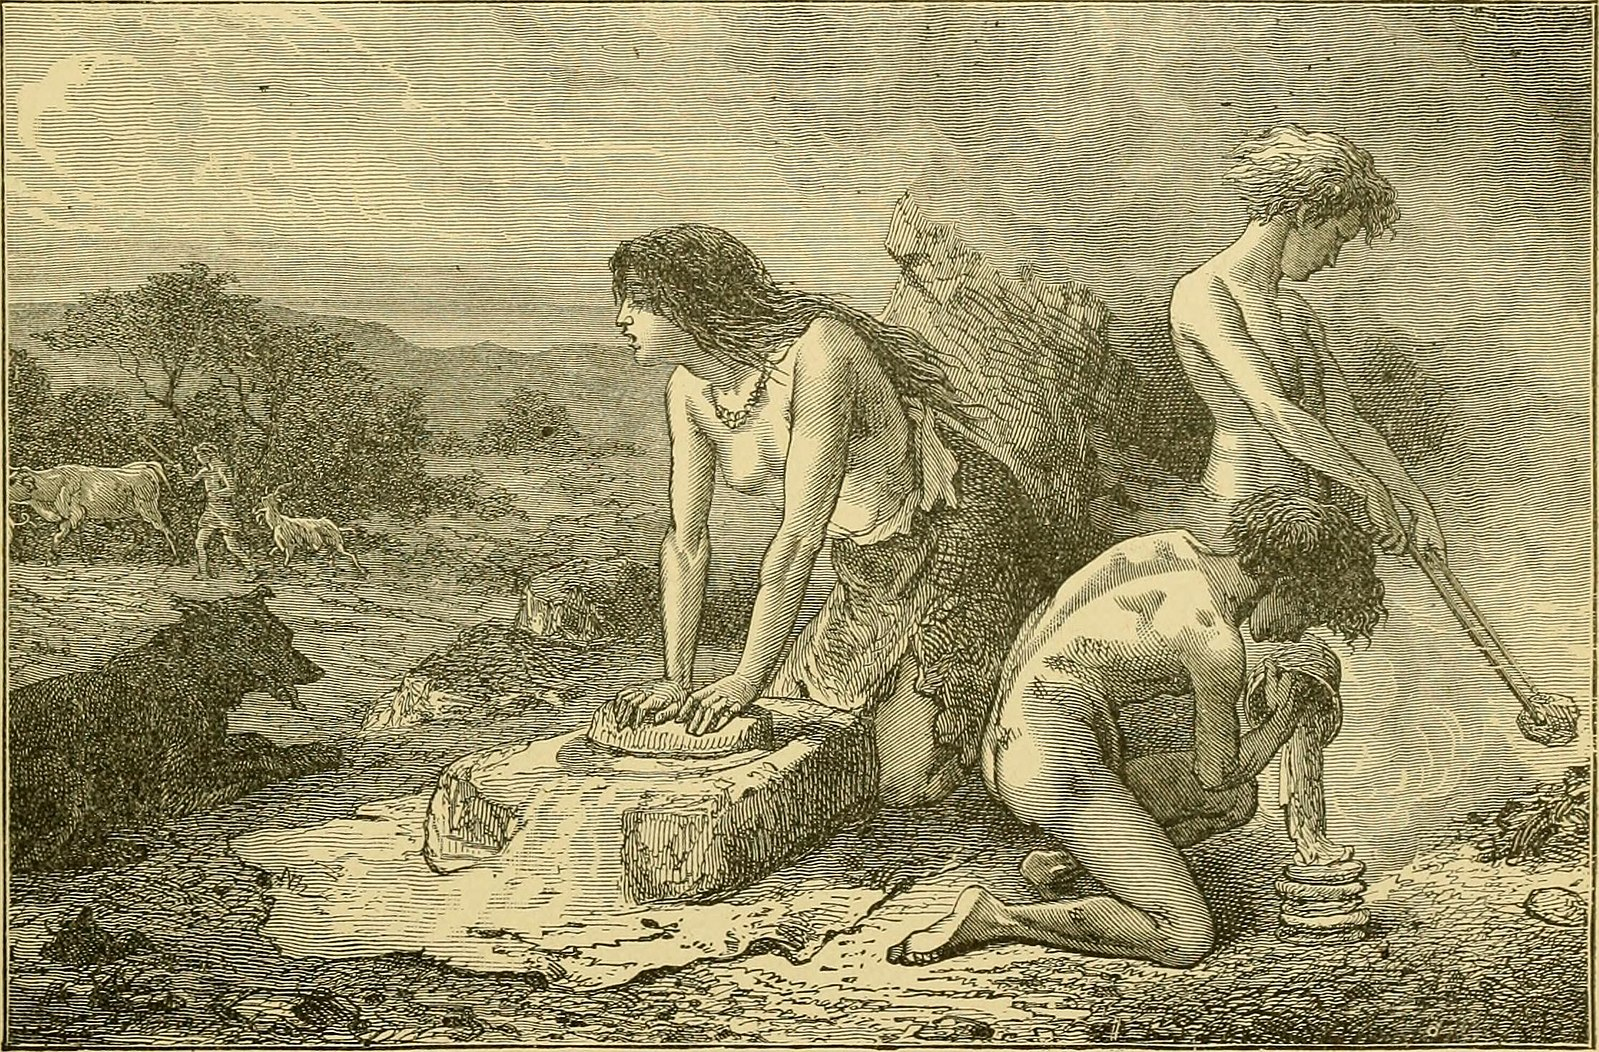 Difference Between Primitive Mythology and Classical Mythology